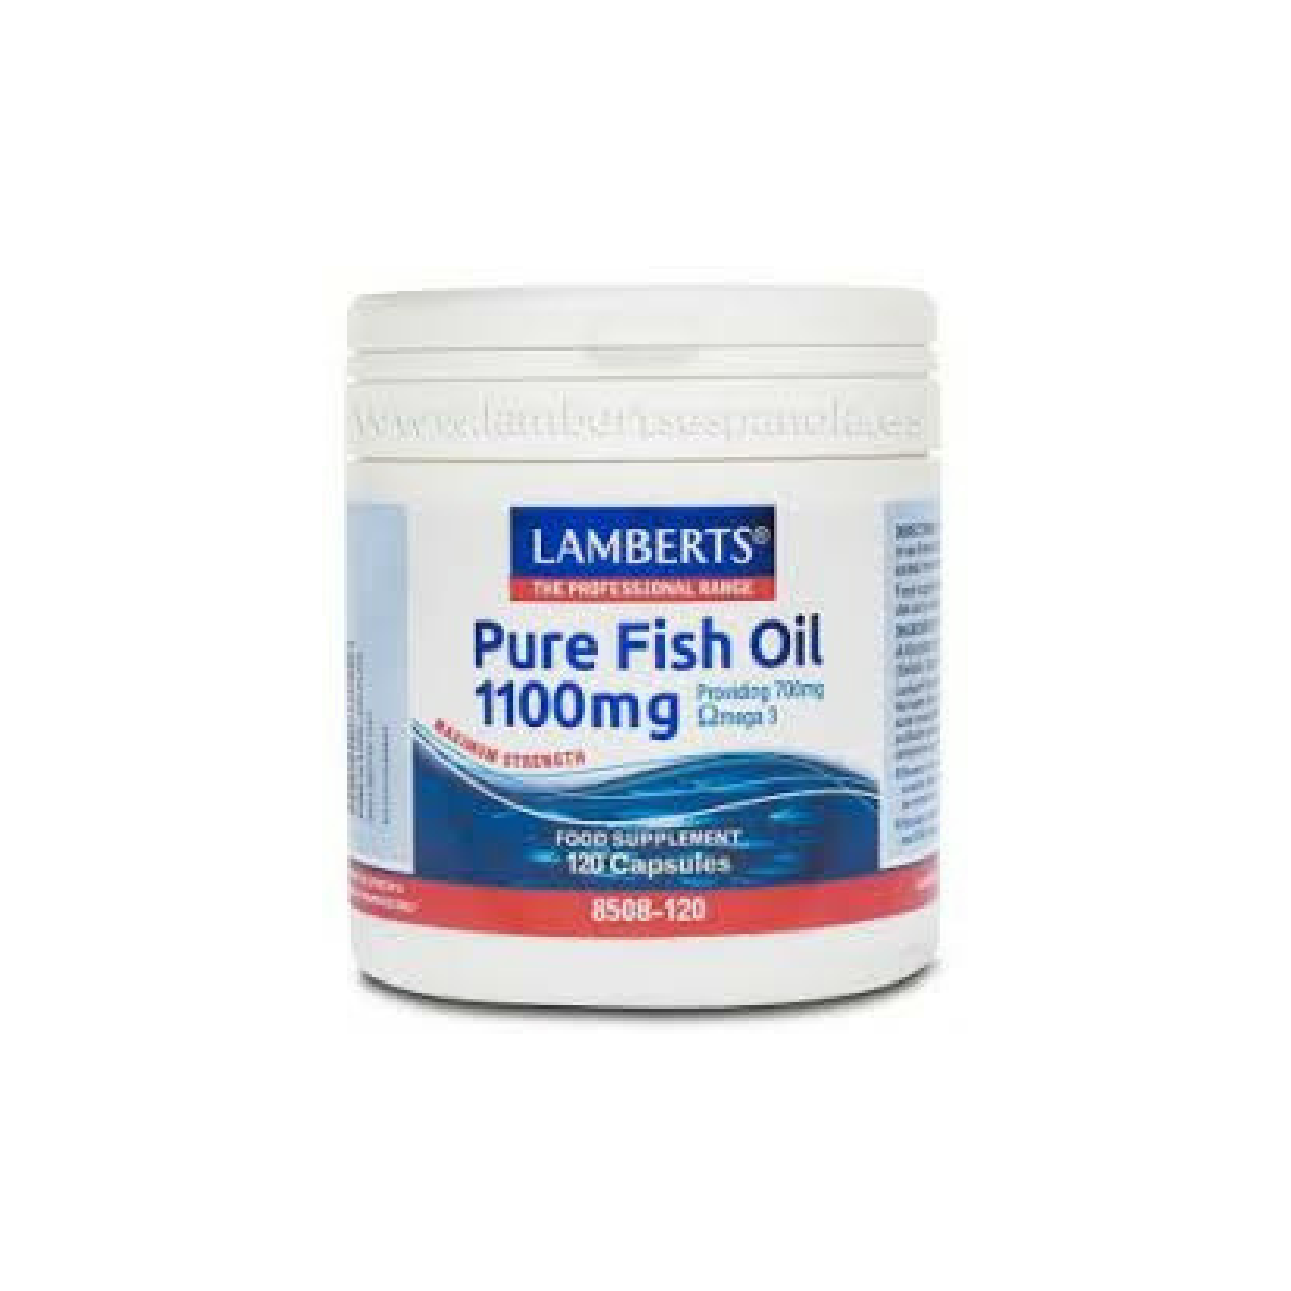 Pure fish oil capsules 120 for Fish oil good or bad